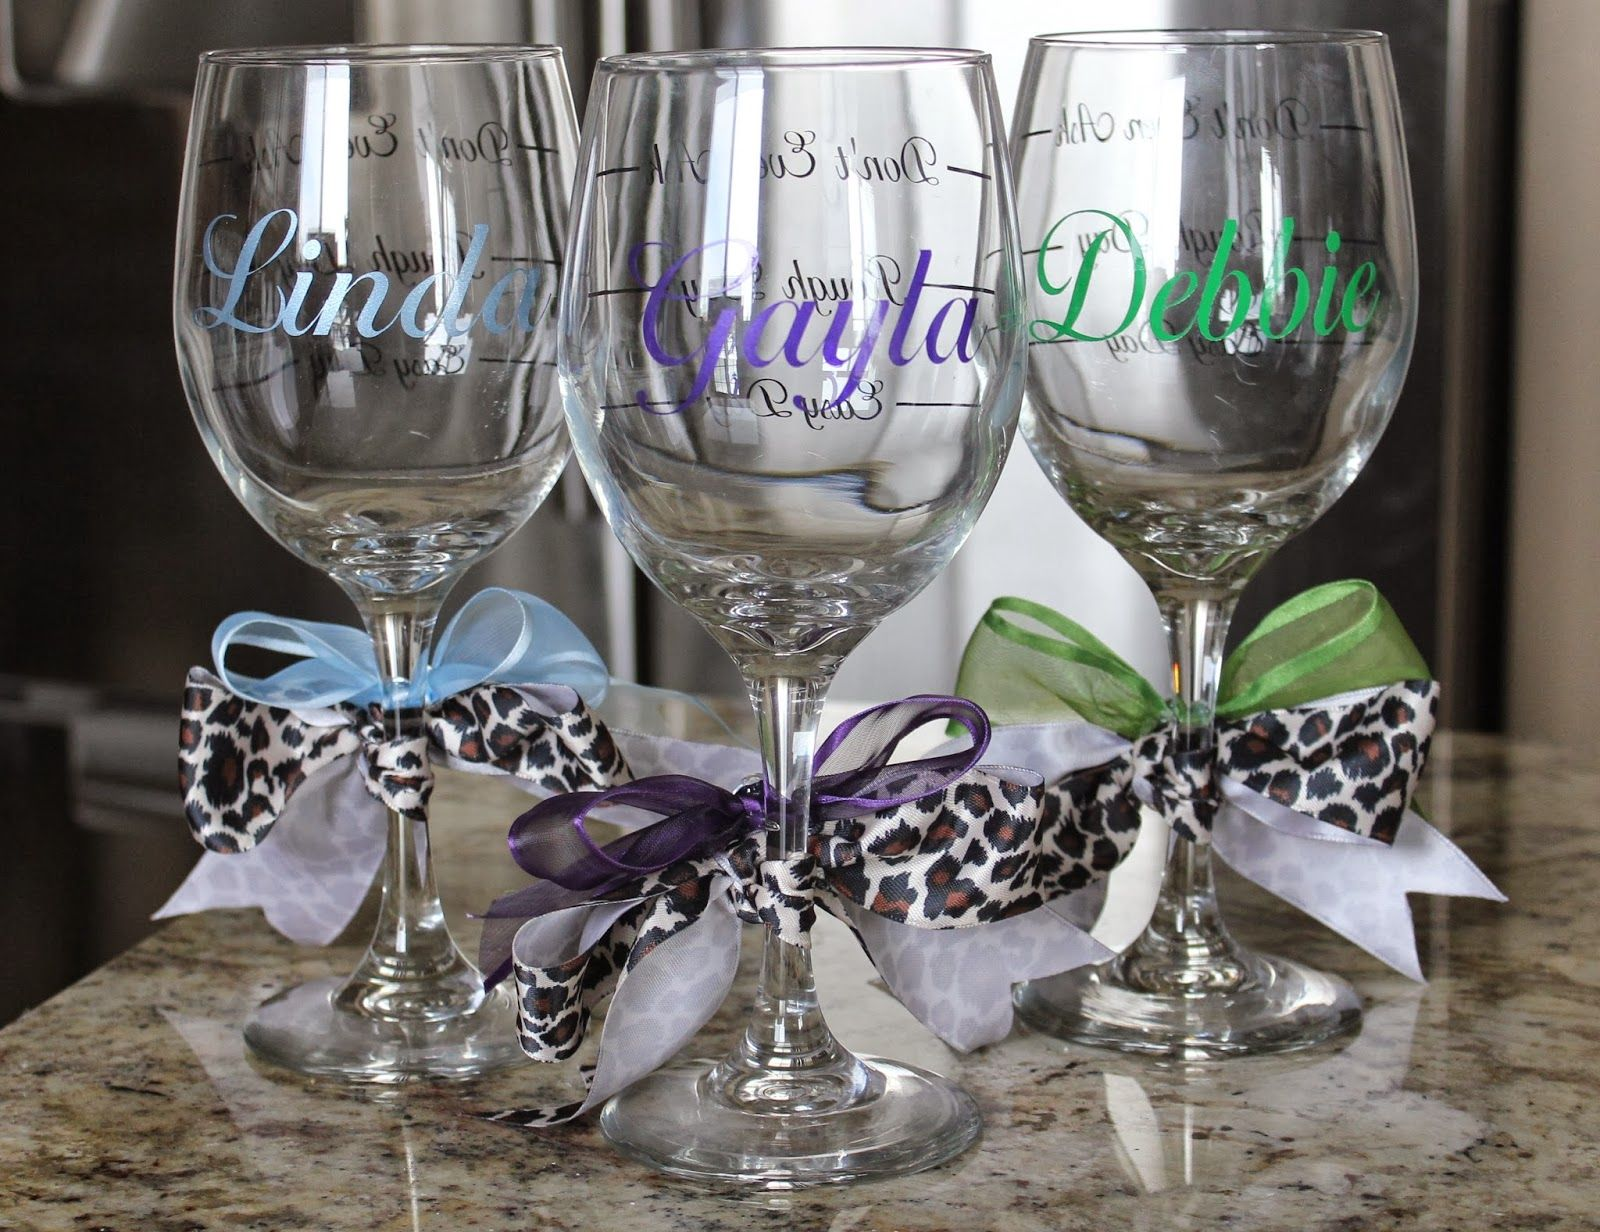 Cher's Signs by Design   Wine glasses, Personalized wine glasses, Wine